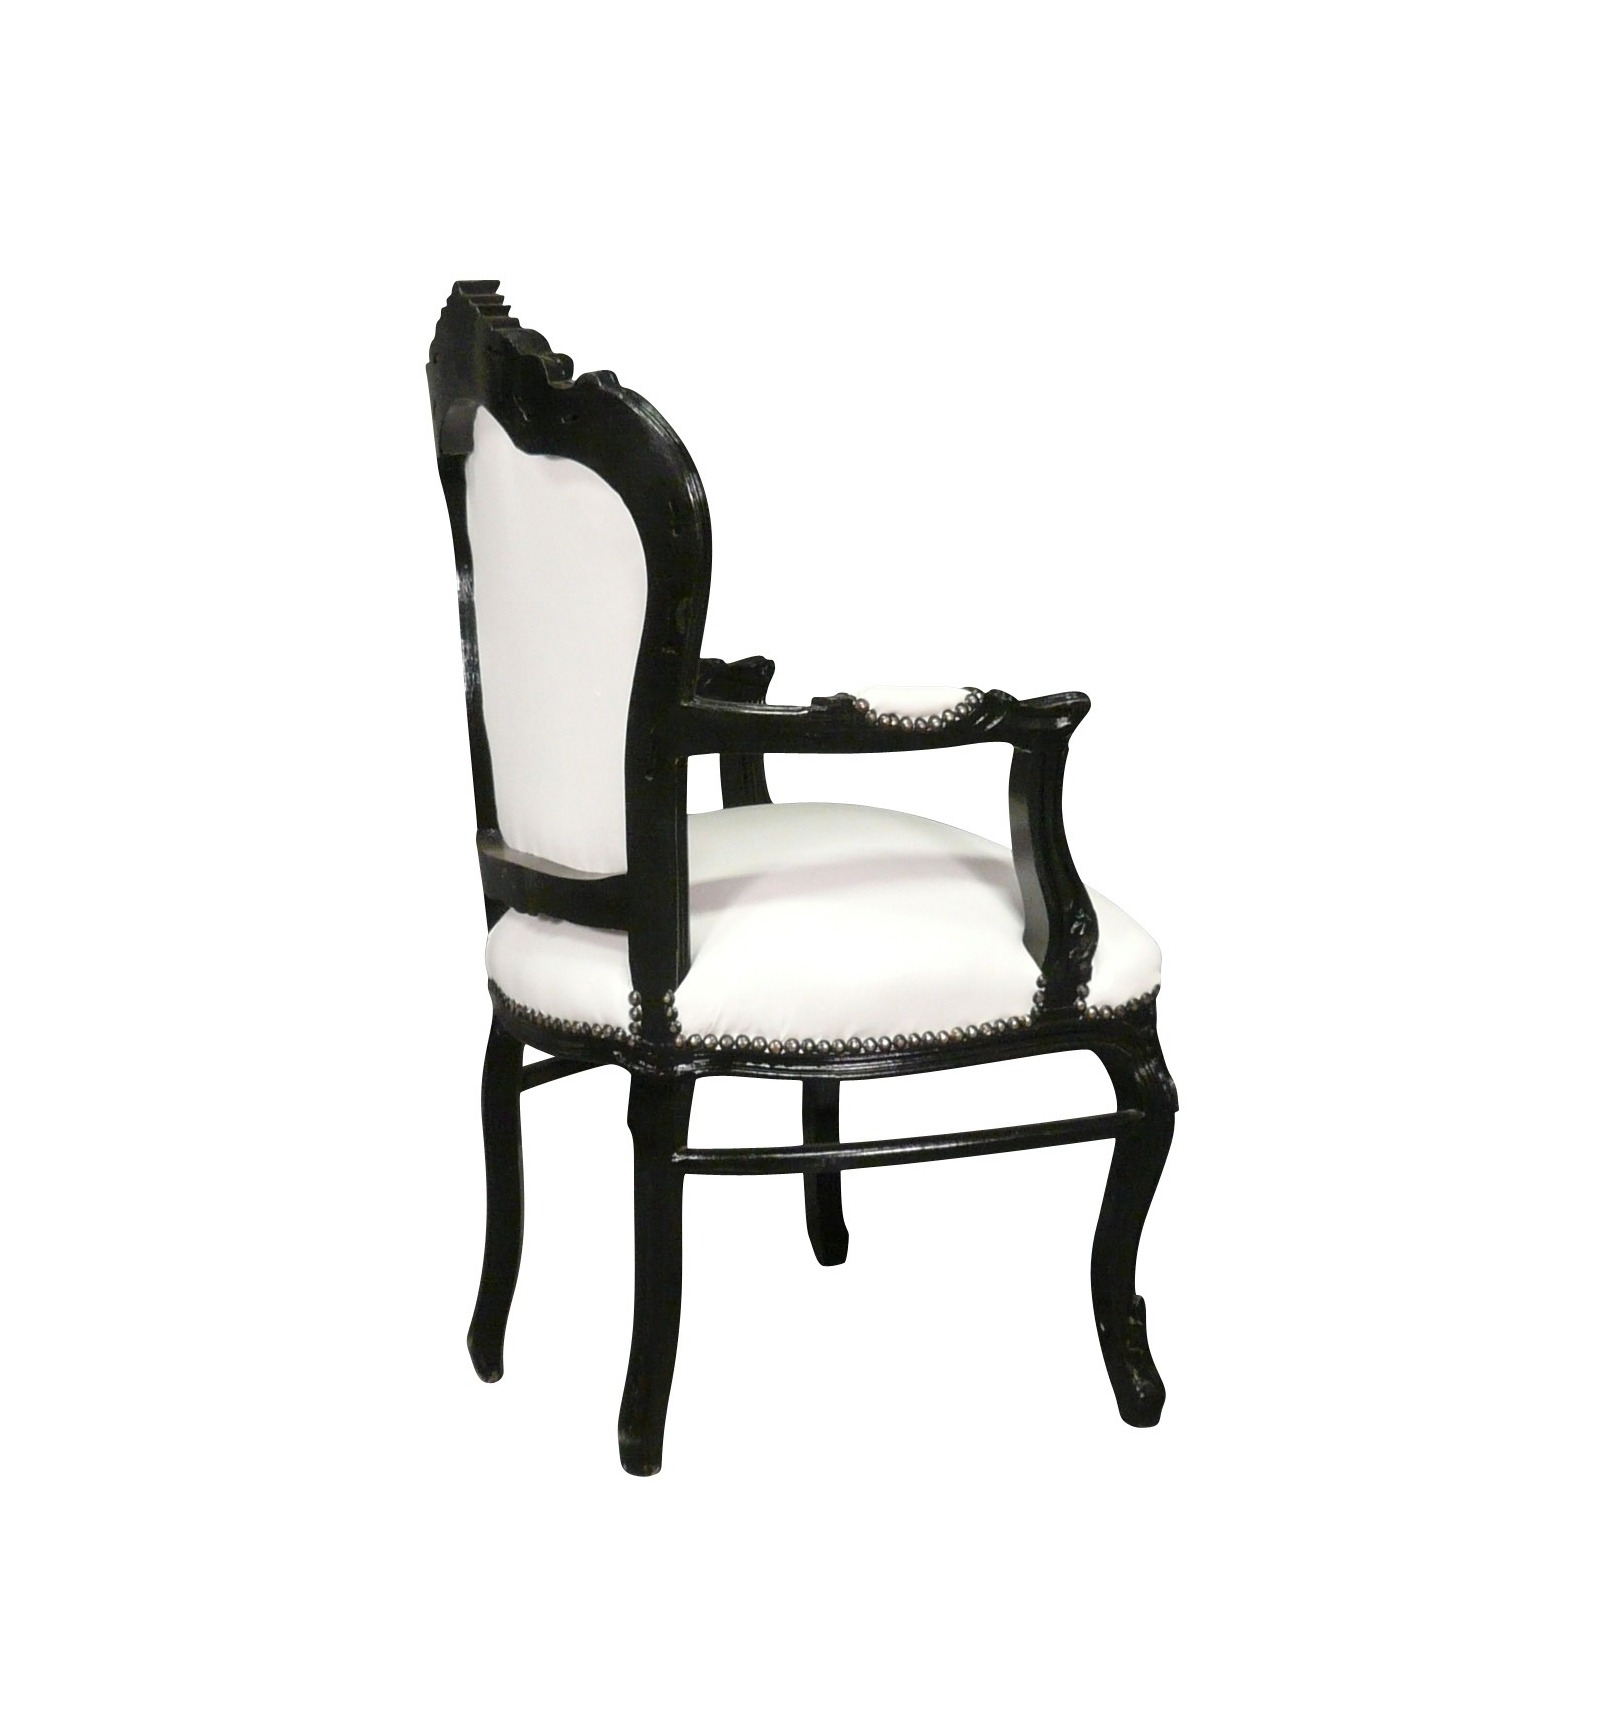 fauteuil baroque noir et blanc vesoul mobilier art d co. Black Bedroom Furniture Sets. Home Design Ideas